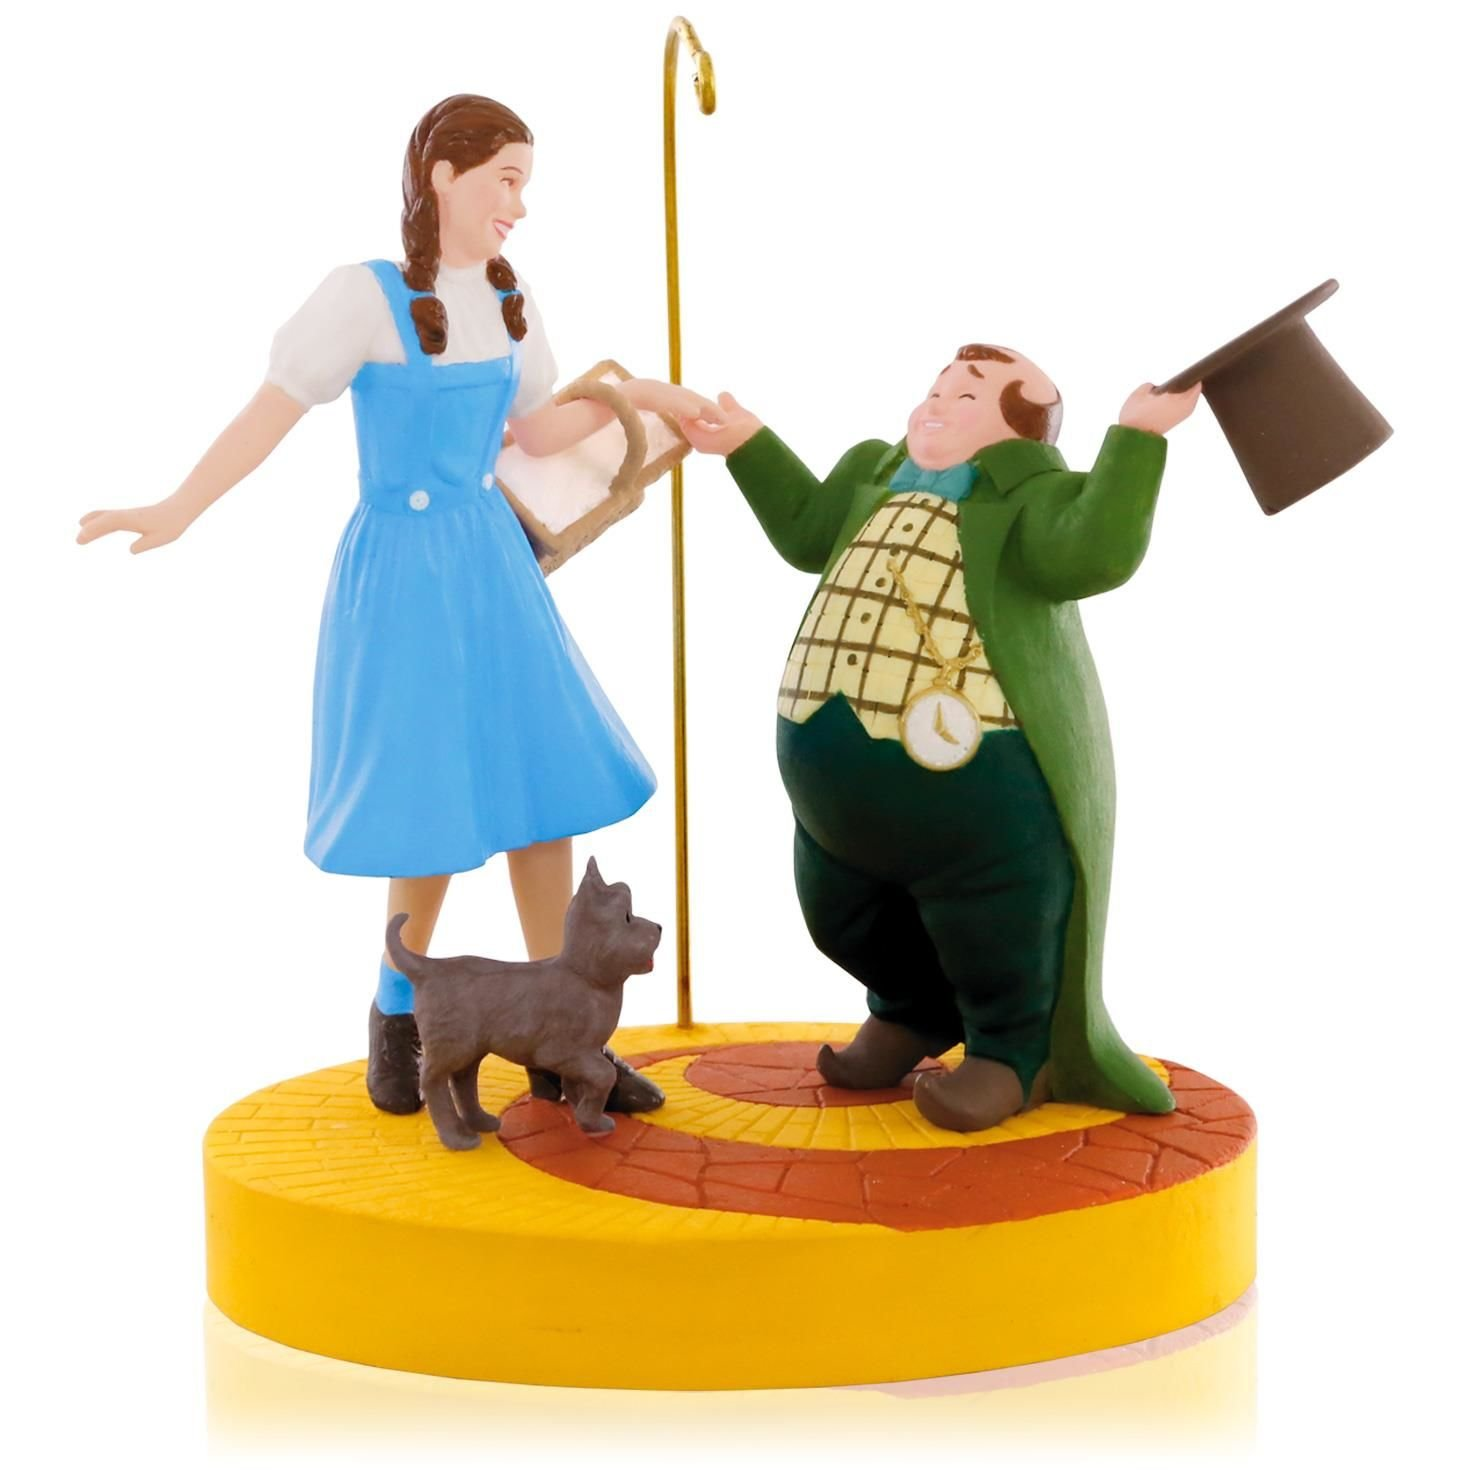 Behind the curtain wizard of oz - Amazon Com The Wizard Of Oz Ding Dong The Witch Is Dead Dorothy Toto And Munchkins Ornament 2015 Hallmark Home Kitchen